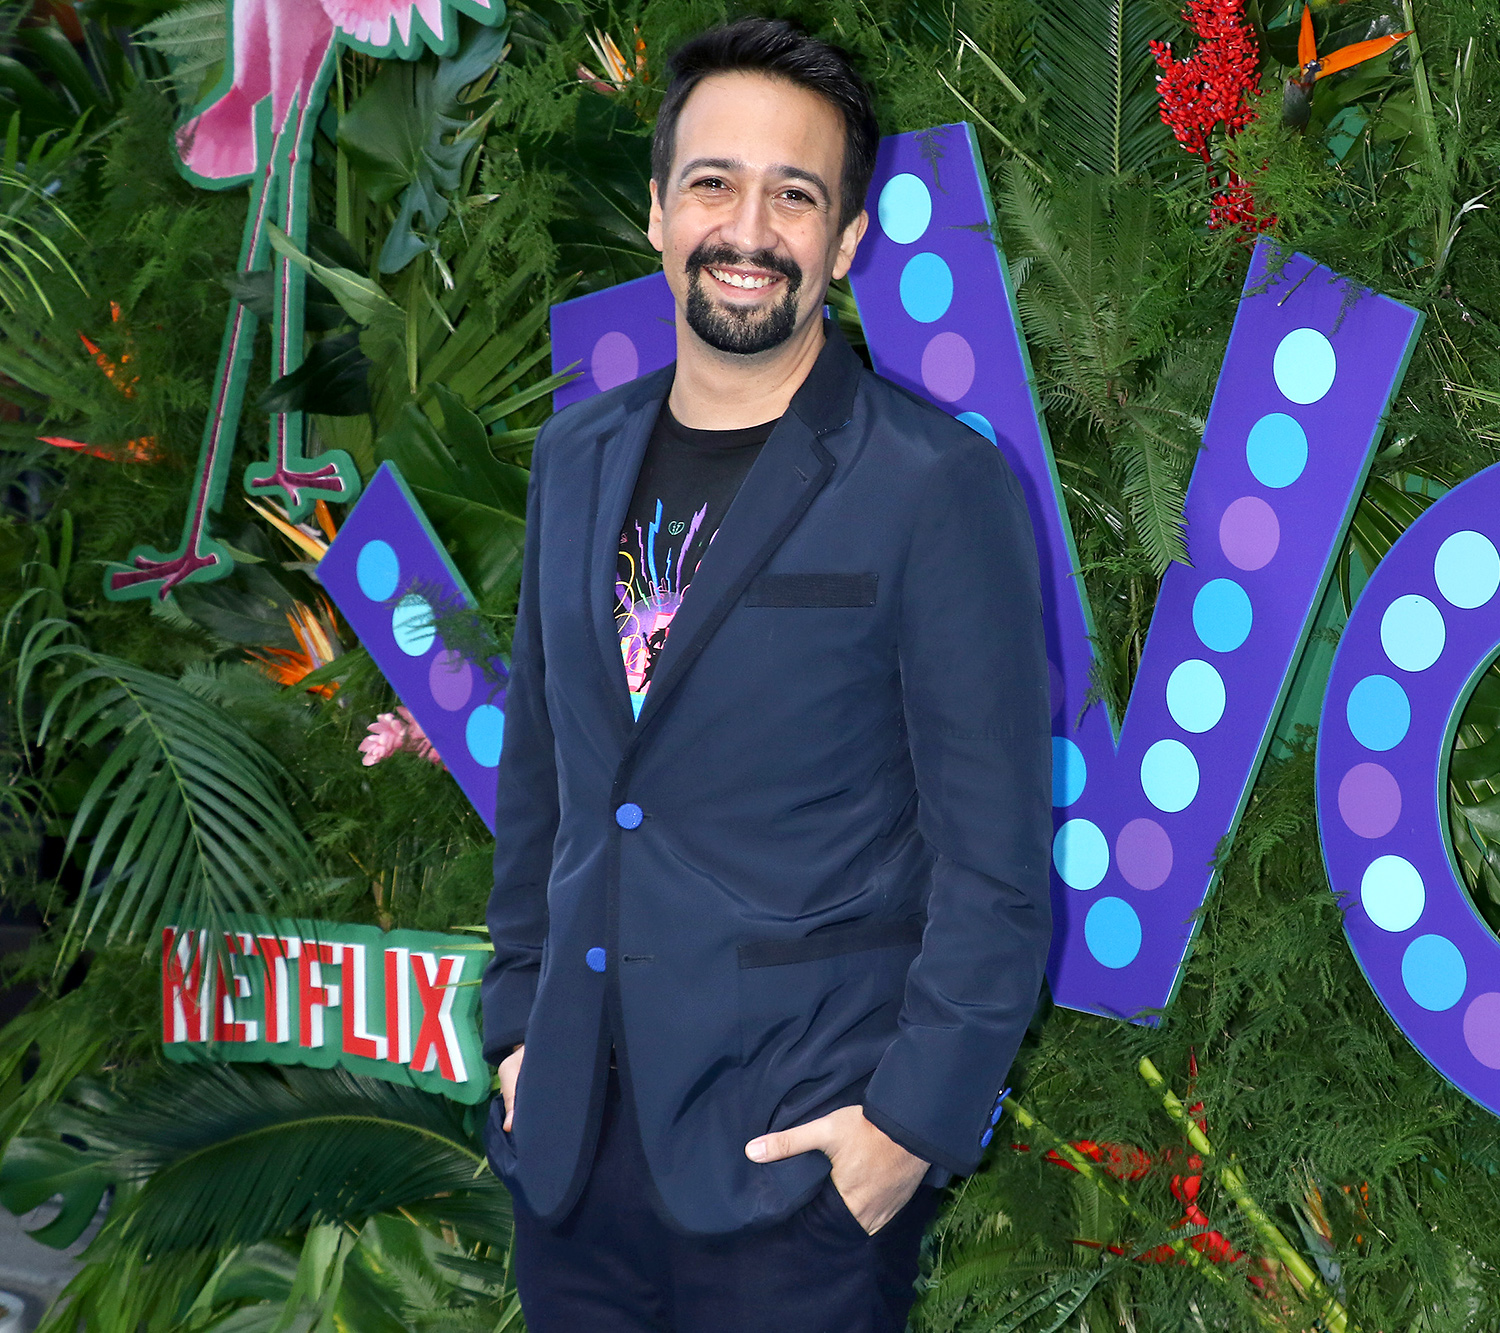 """Lin-Manuel Miranda attends the """"VIVO"""" New York screening at Village East by Angelika on July 31, 2021 in New York City."""